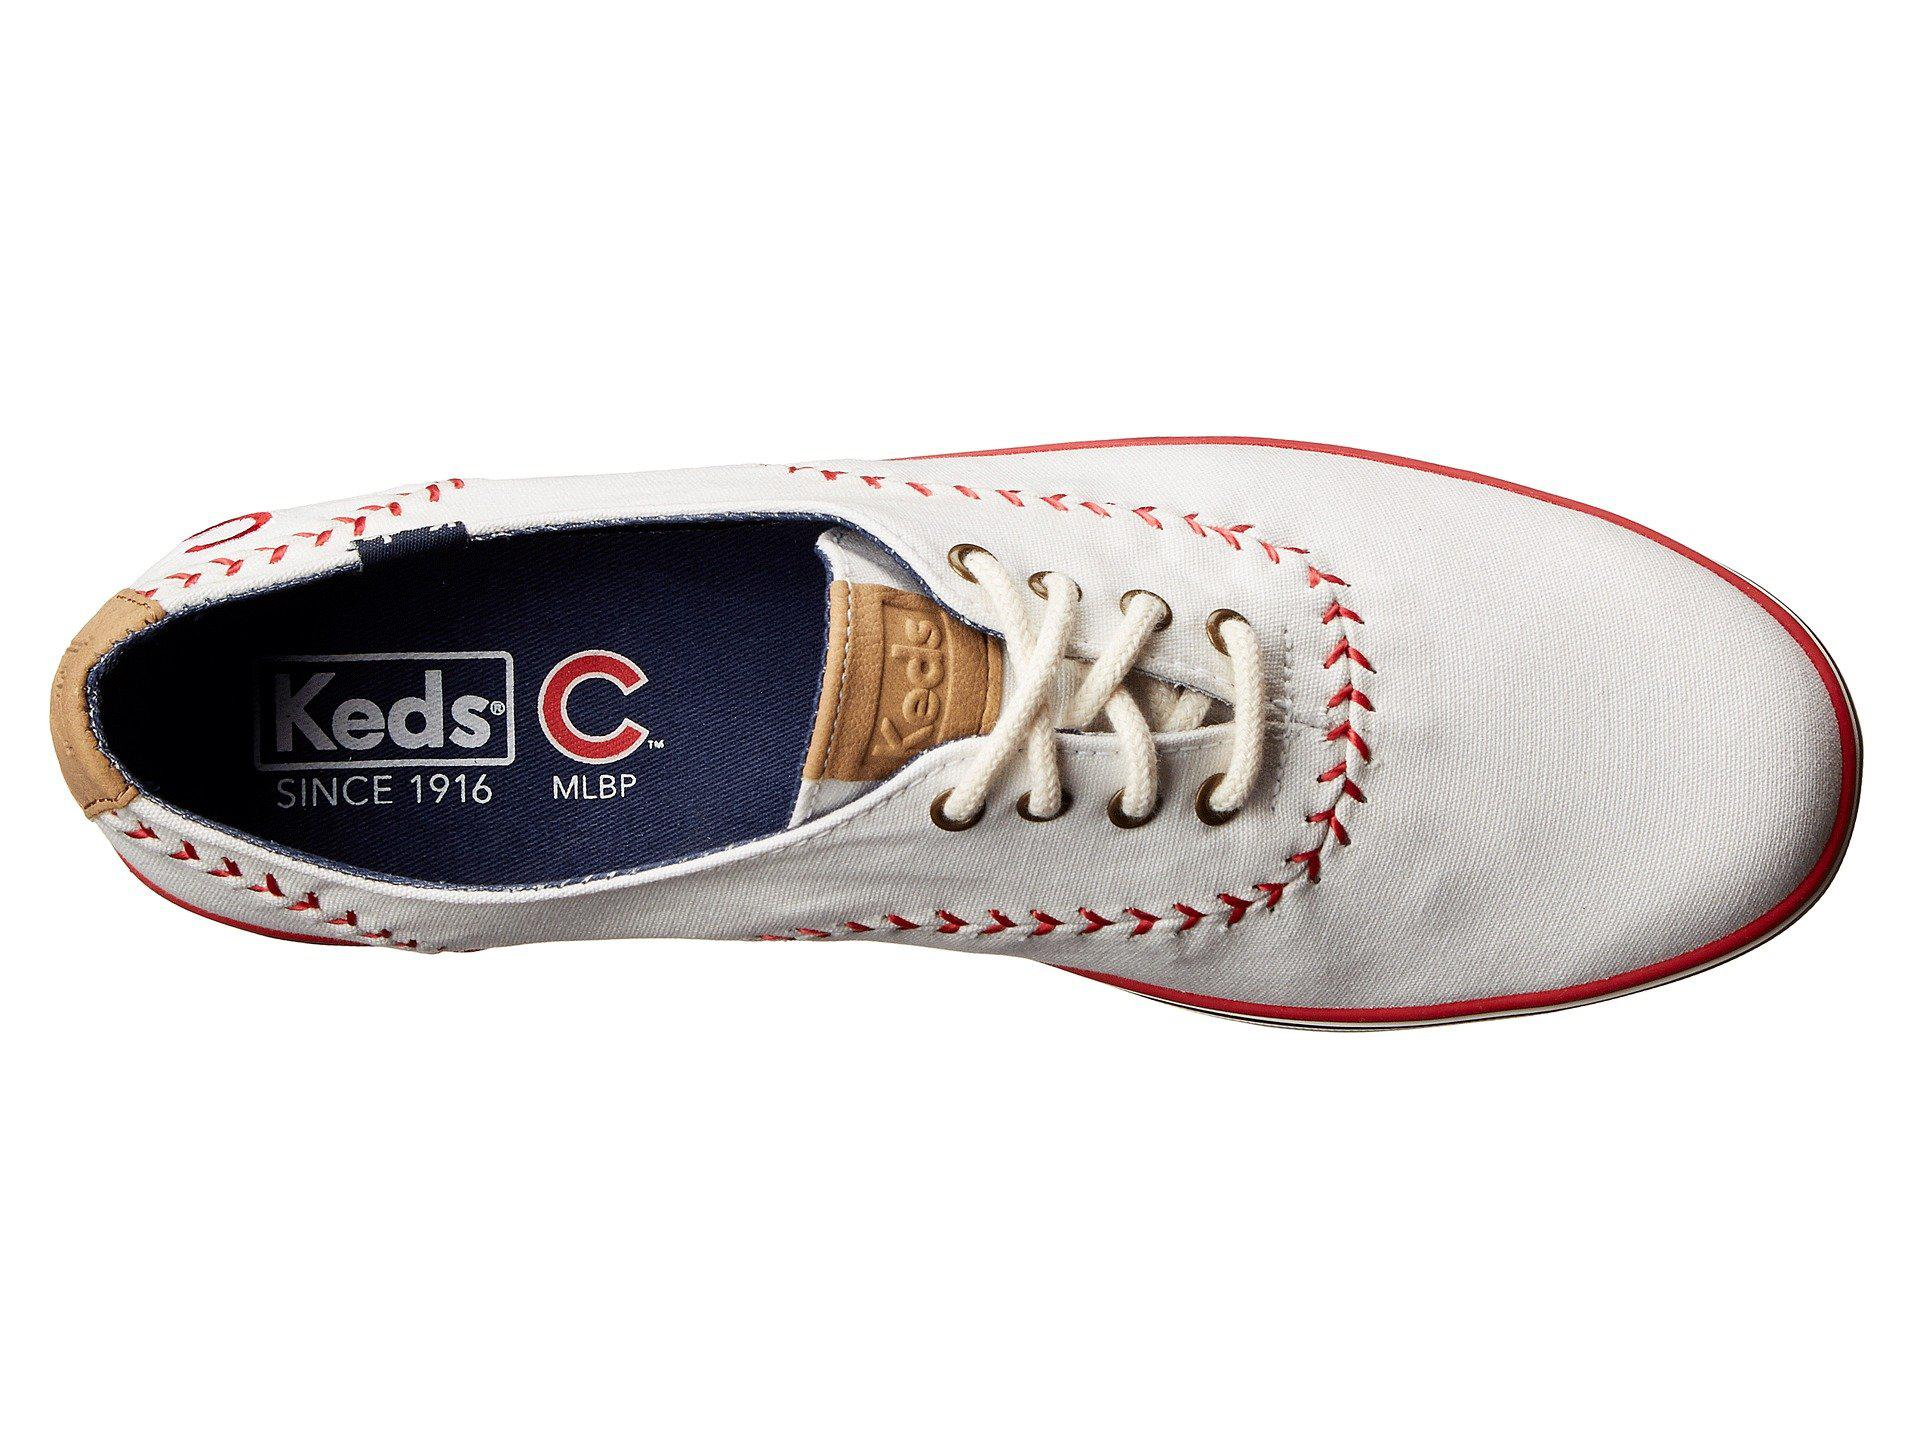 42bfd23412be8 Lyst - Keds Champion Mlb Pennant - Cubs in White